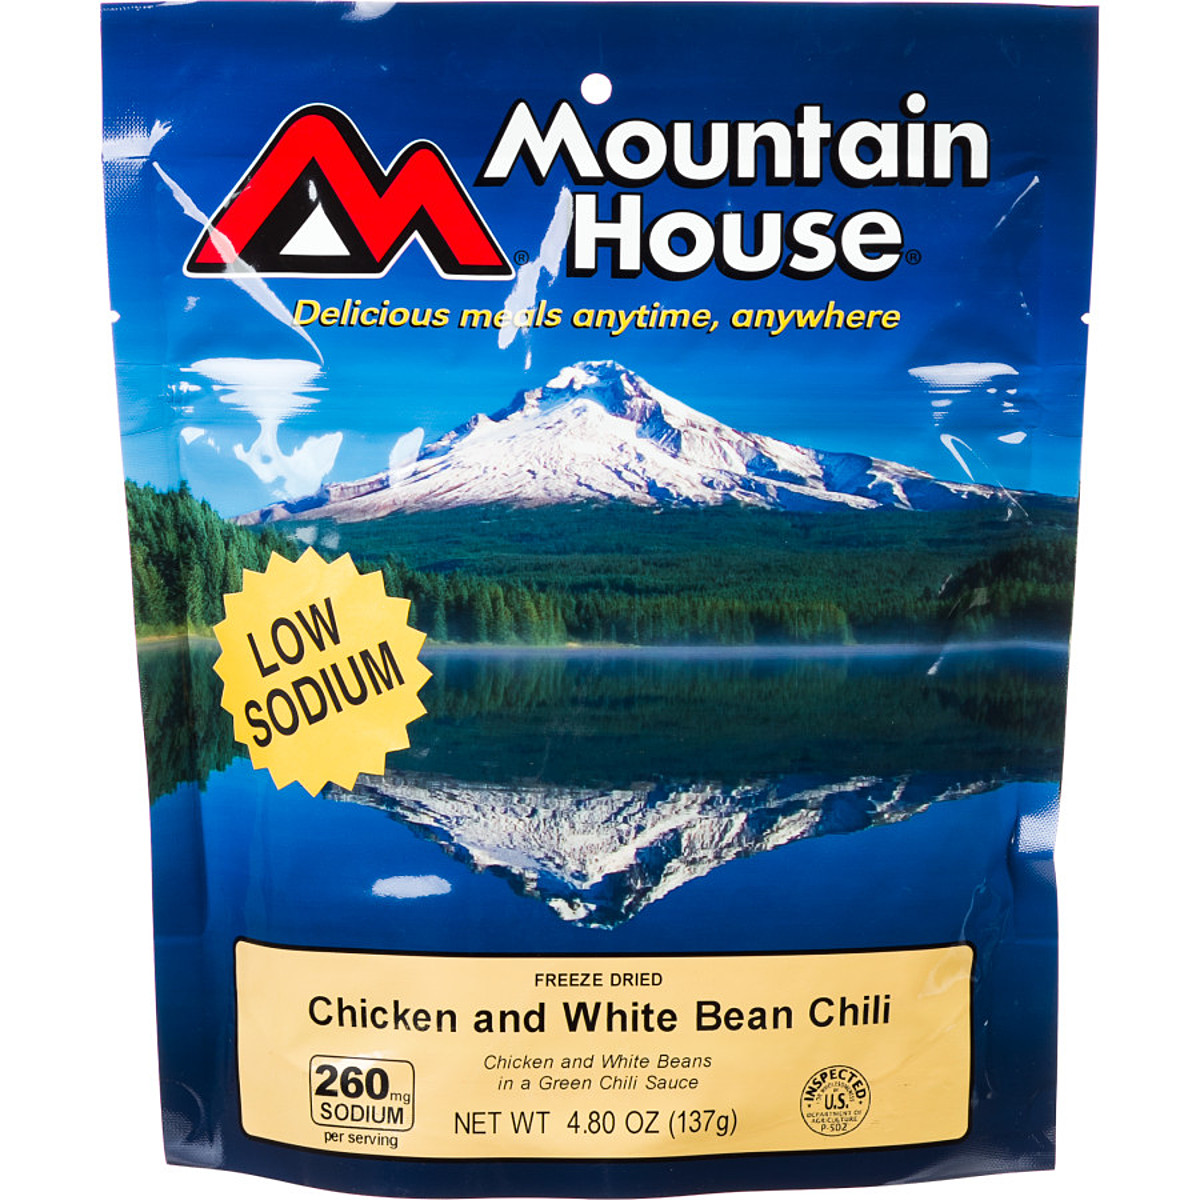 Mountain House Chicken and White Bean Chili